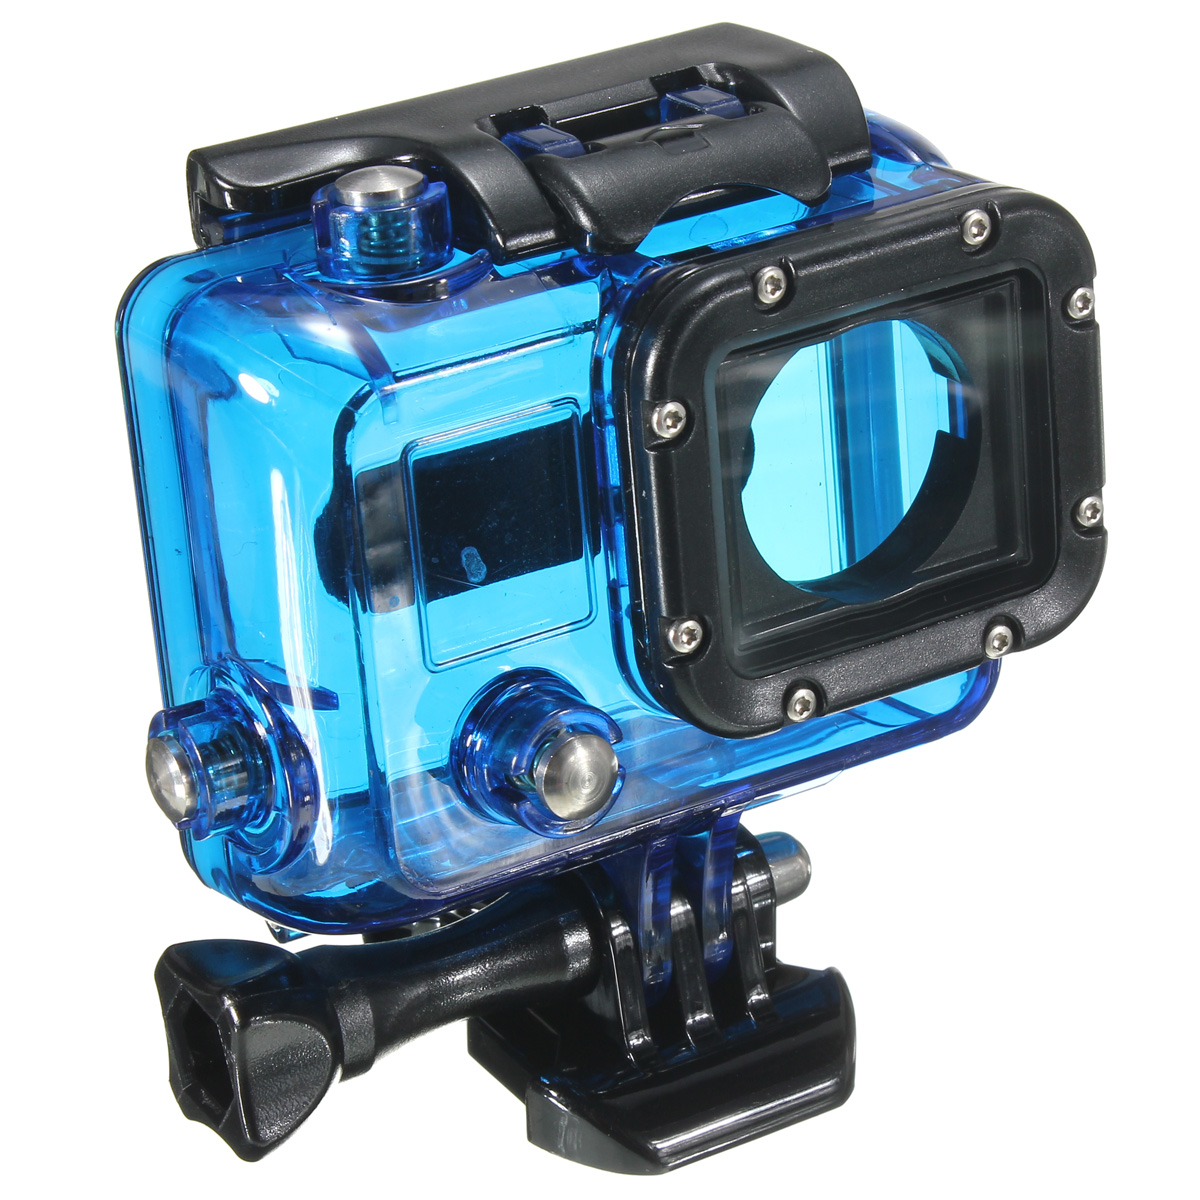 waterproof protective case for camera gopro hero 3 3 4. Black Bedroom Furniture Sets. Home Design Ideas